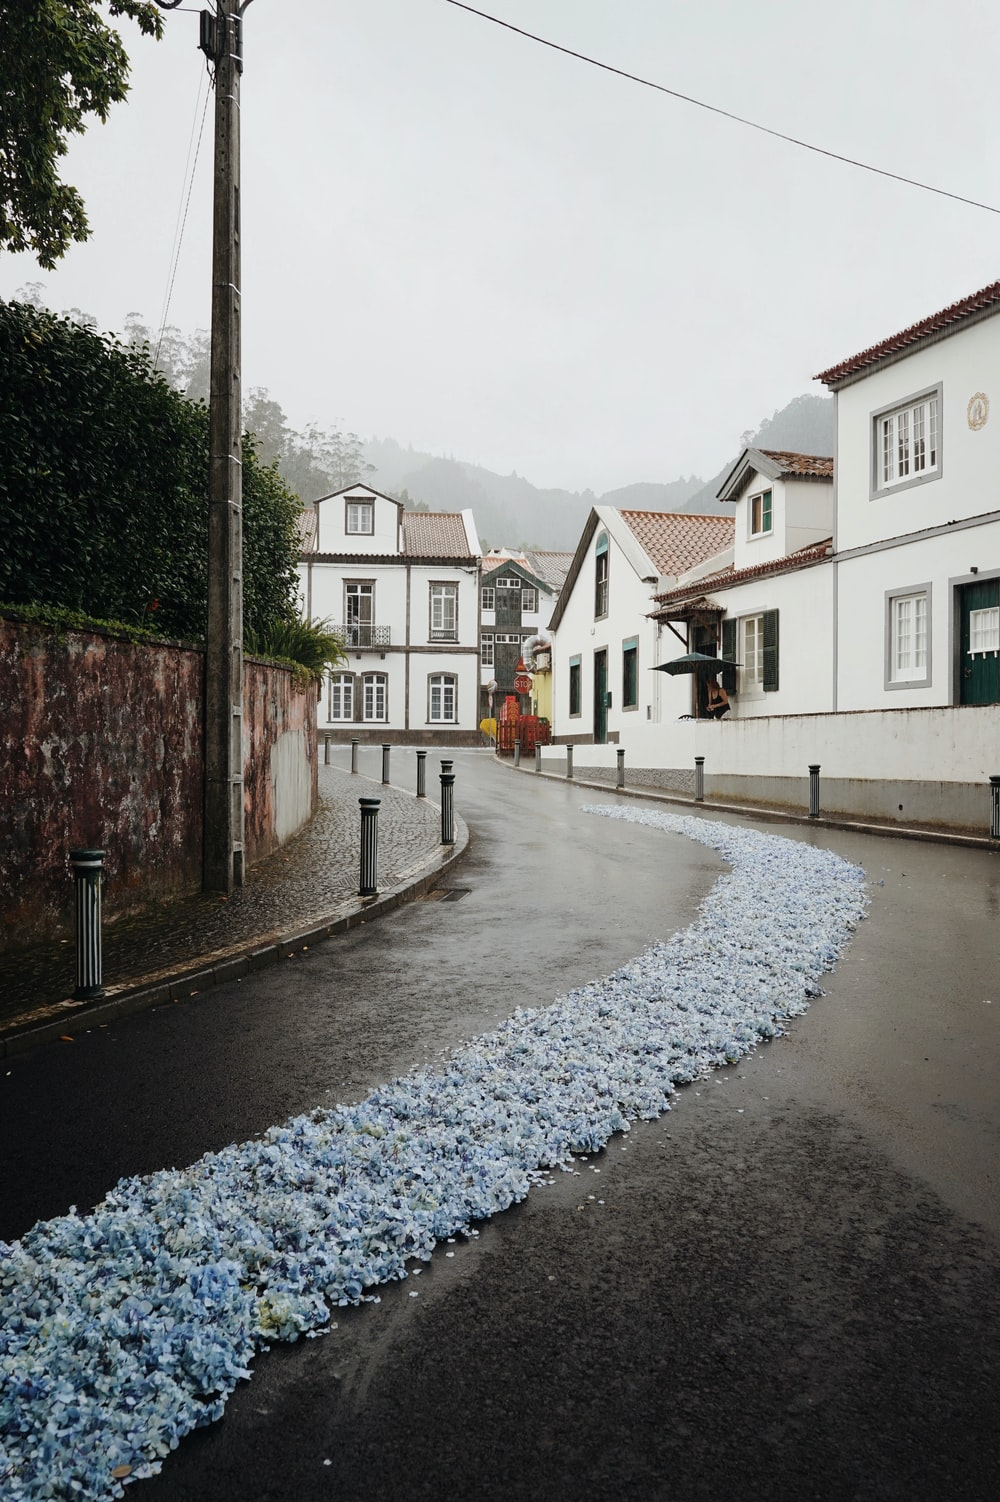 road with blue ornaments beside houses